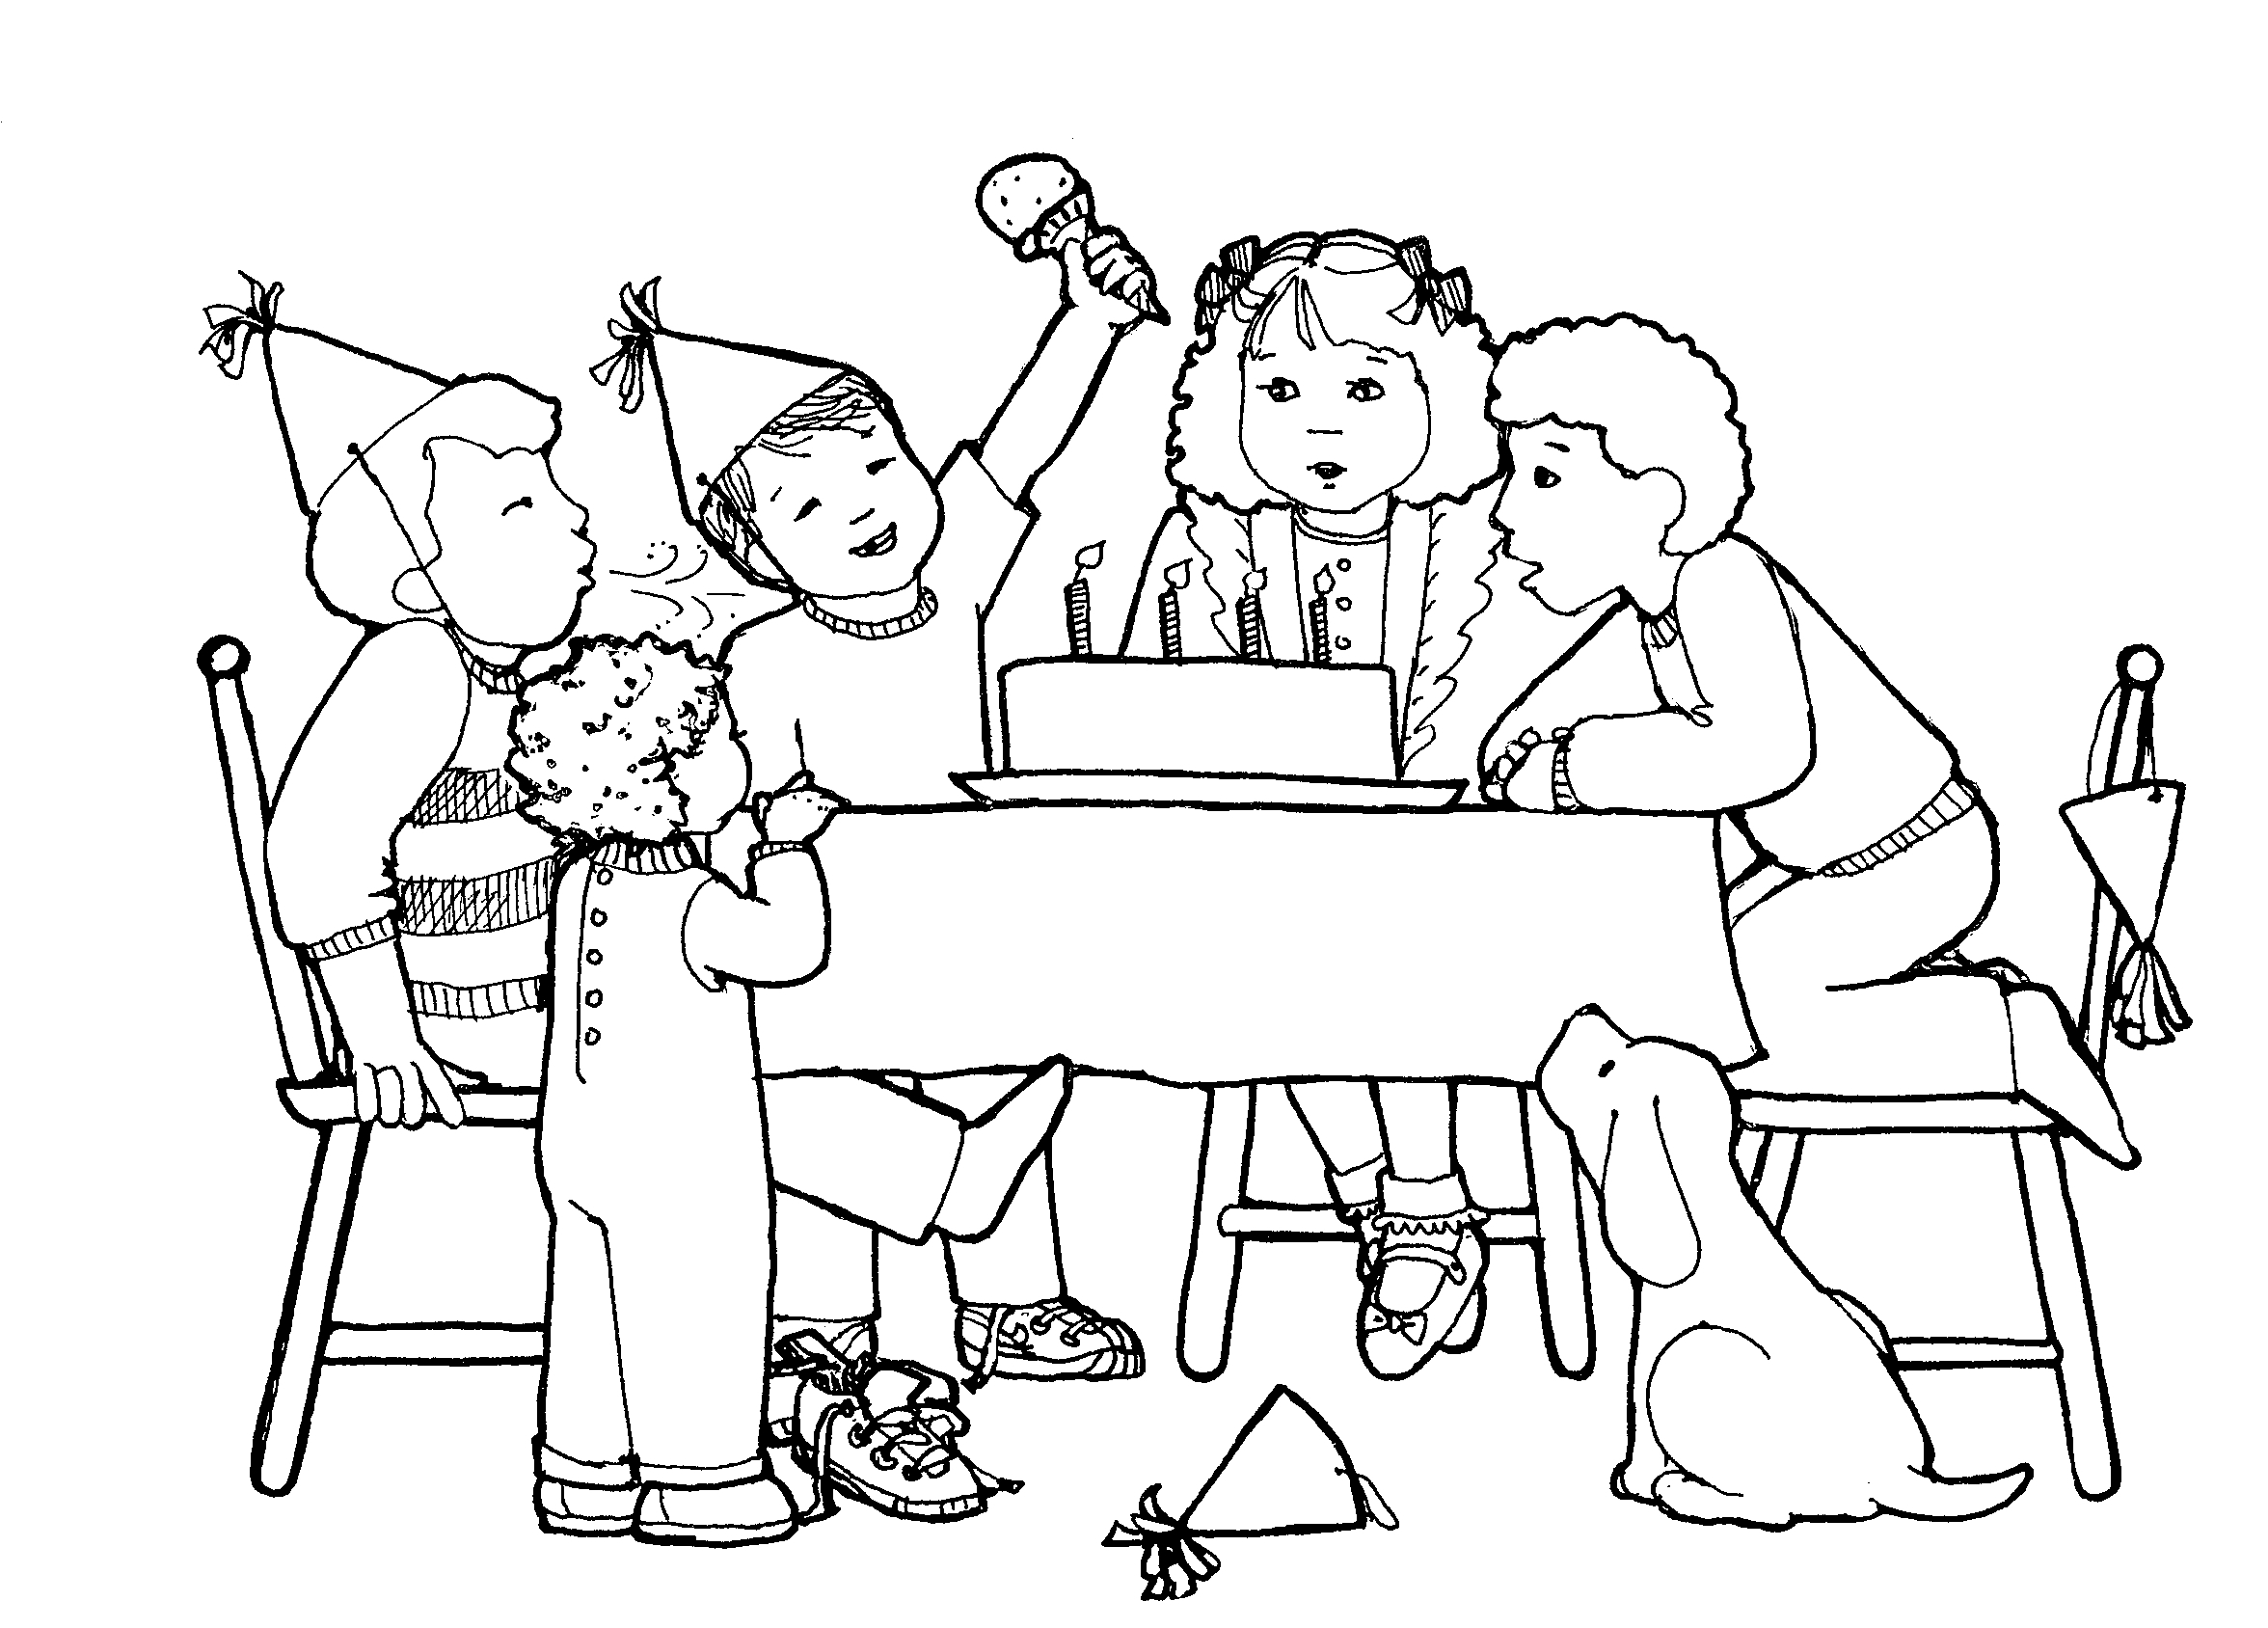 birthday party drawing ideas ; birthday-party-scene-for-drawing-birthday-party-clip-art-birthday-party-ideas